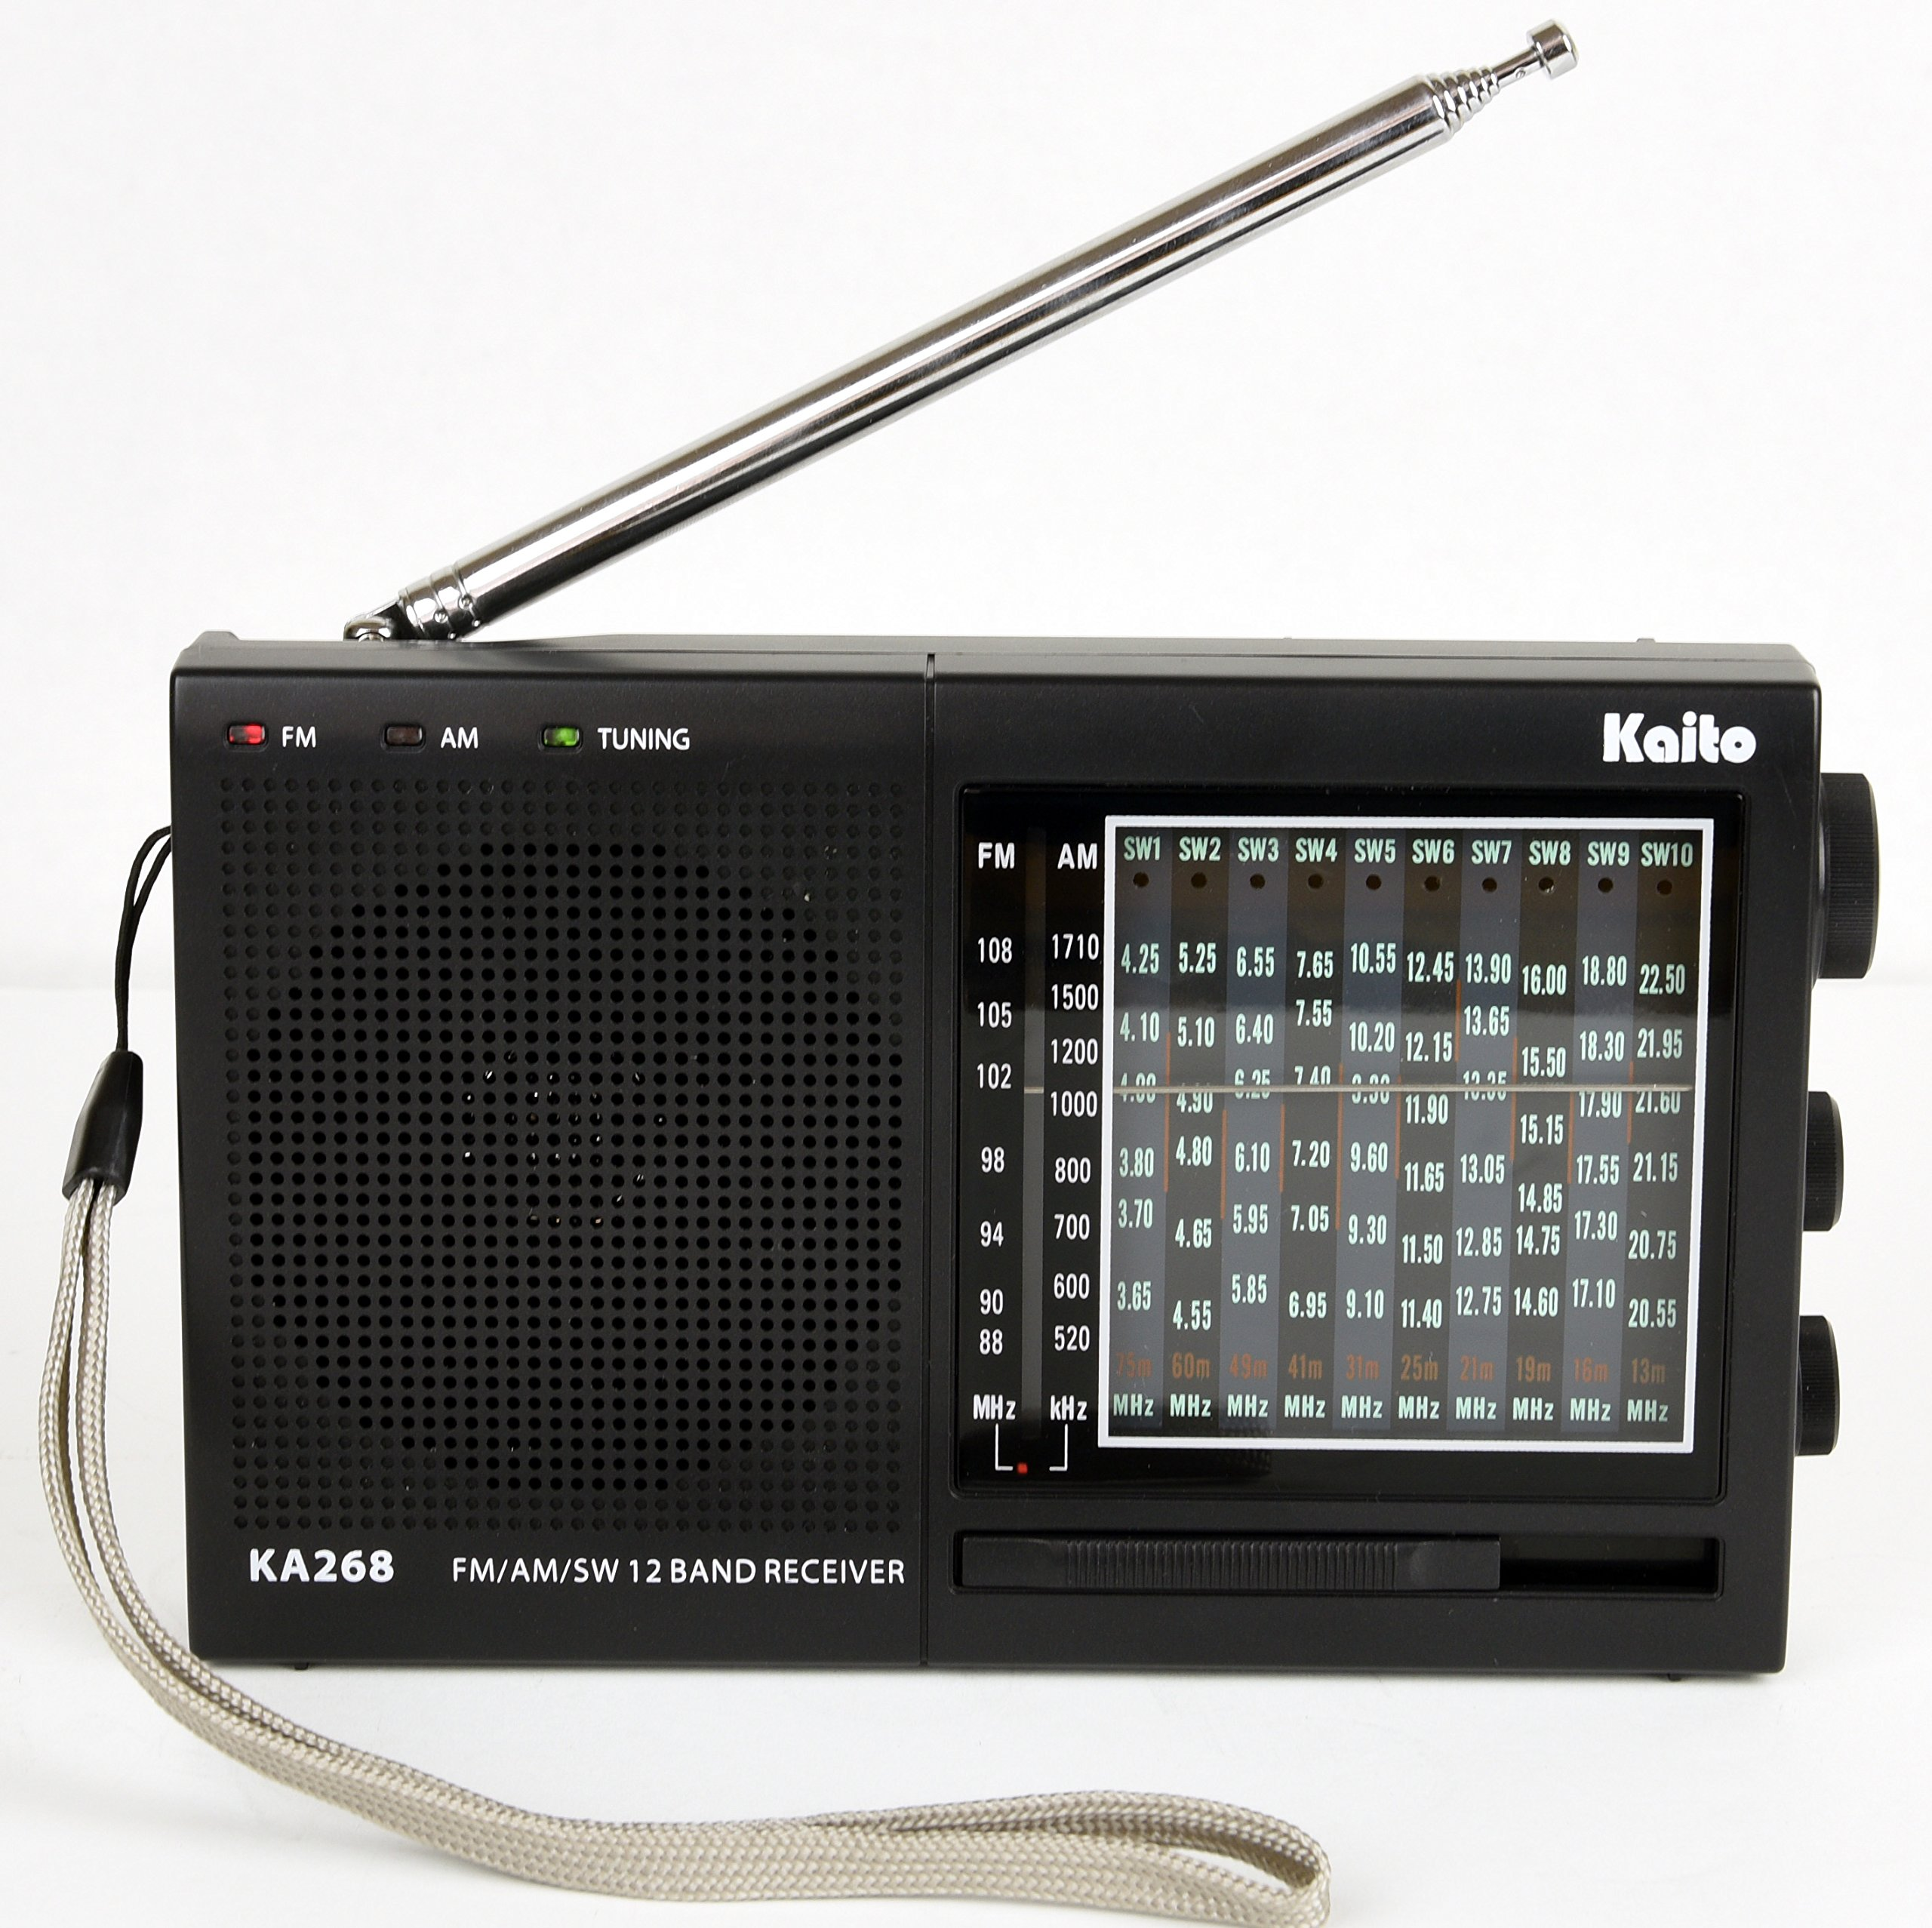 Kaito KA268 12 Band World Receiver with AM/FM and 10 Shortwave Bands 3.8 Mhz - 22Mhz